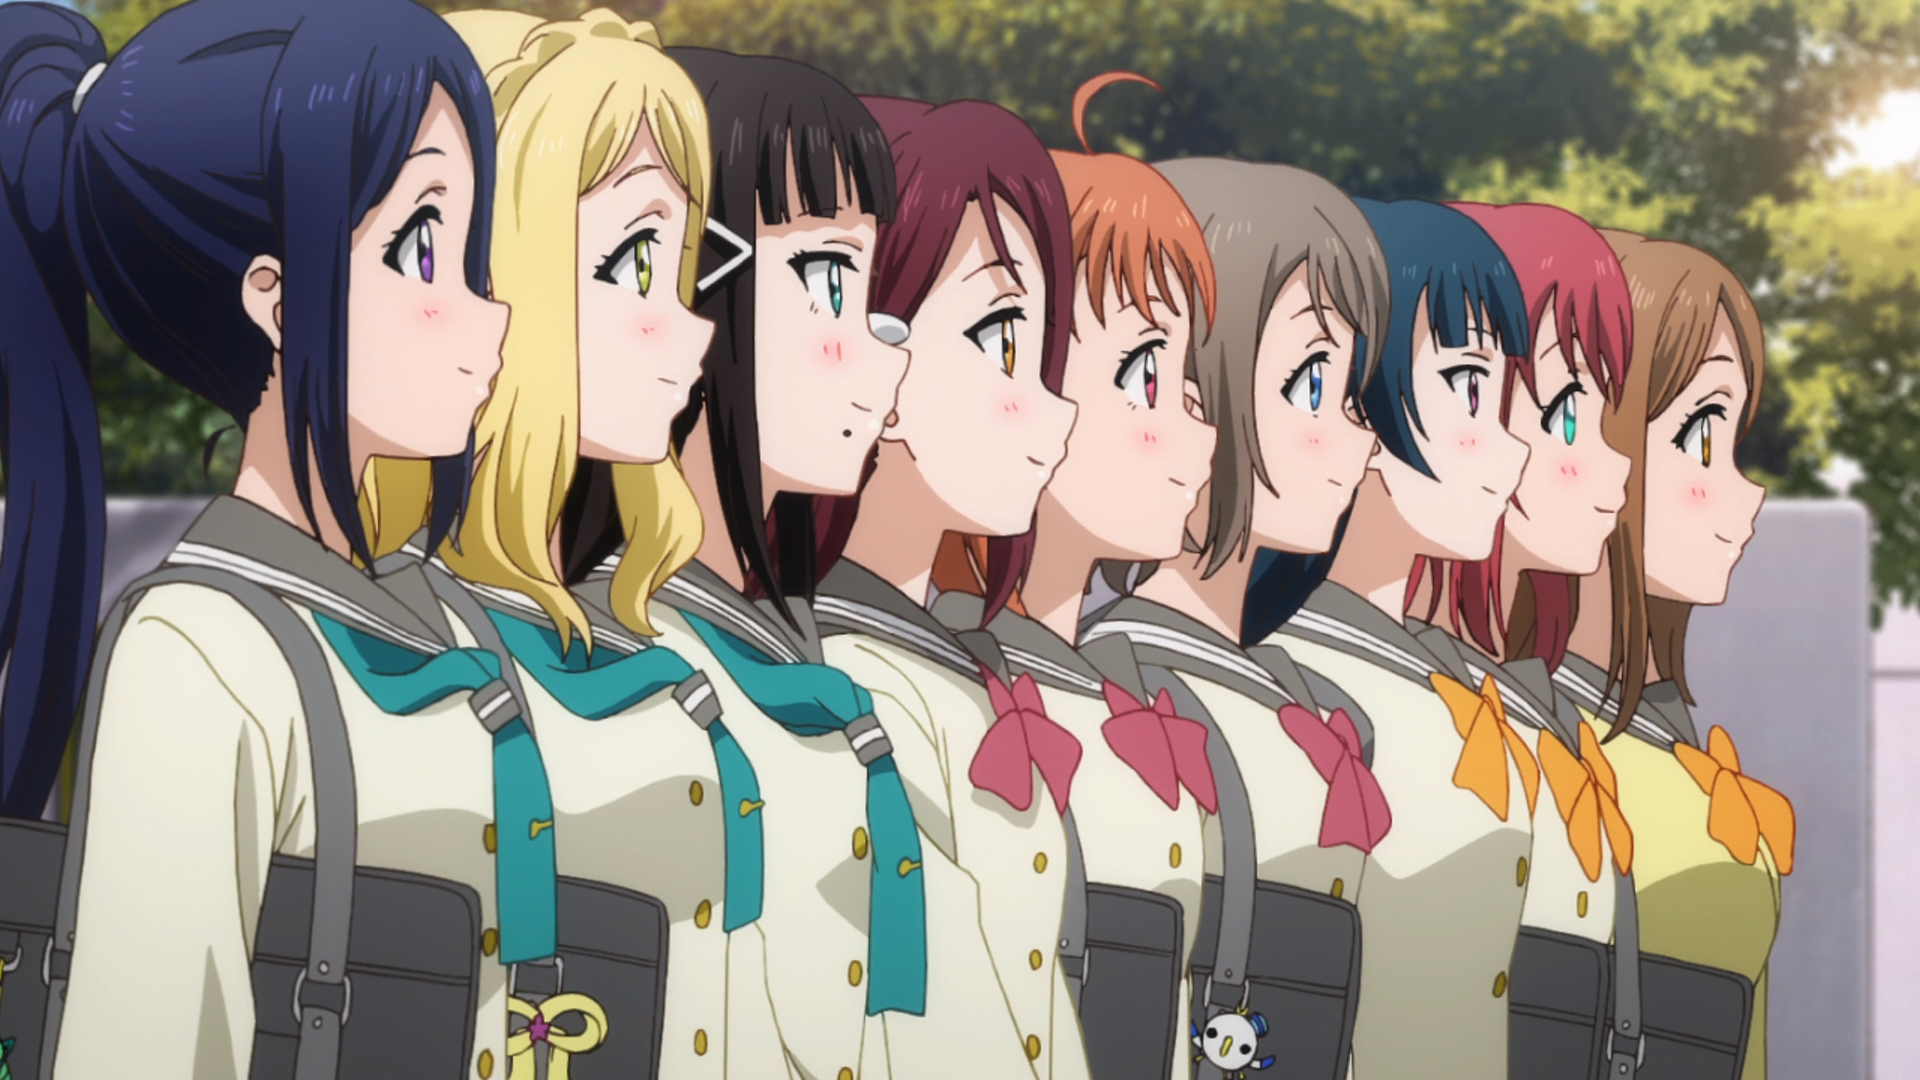 Review/discussion about: Love Live! Sunshine!! 2nd Season